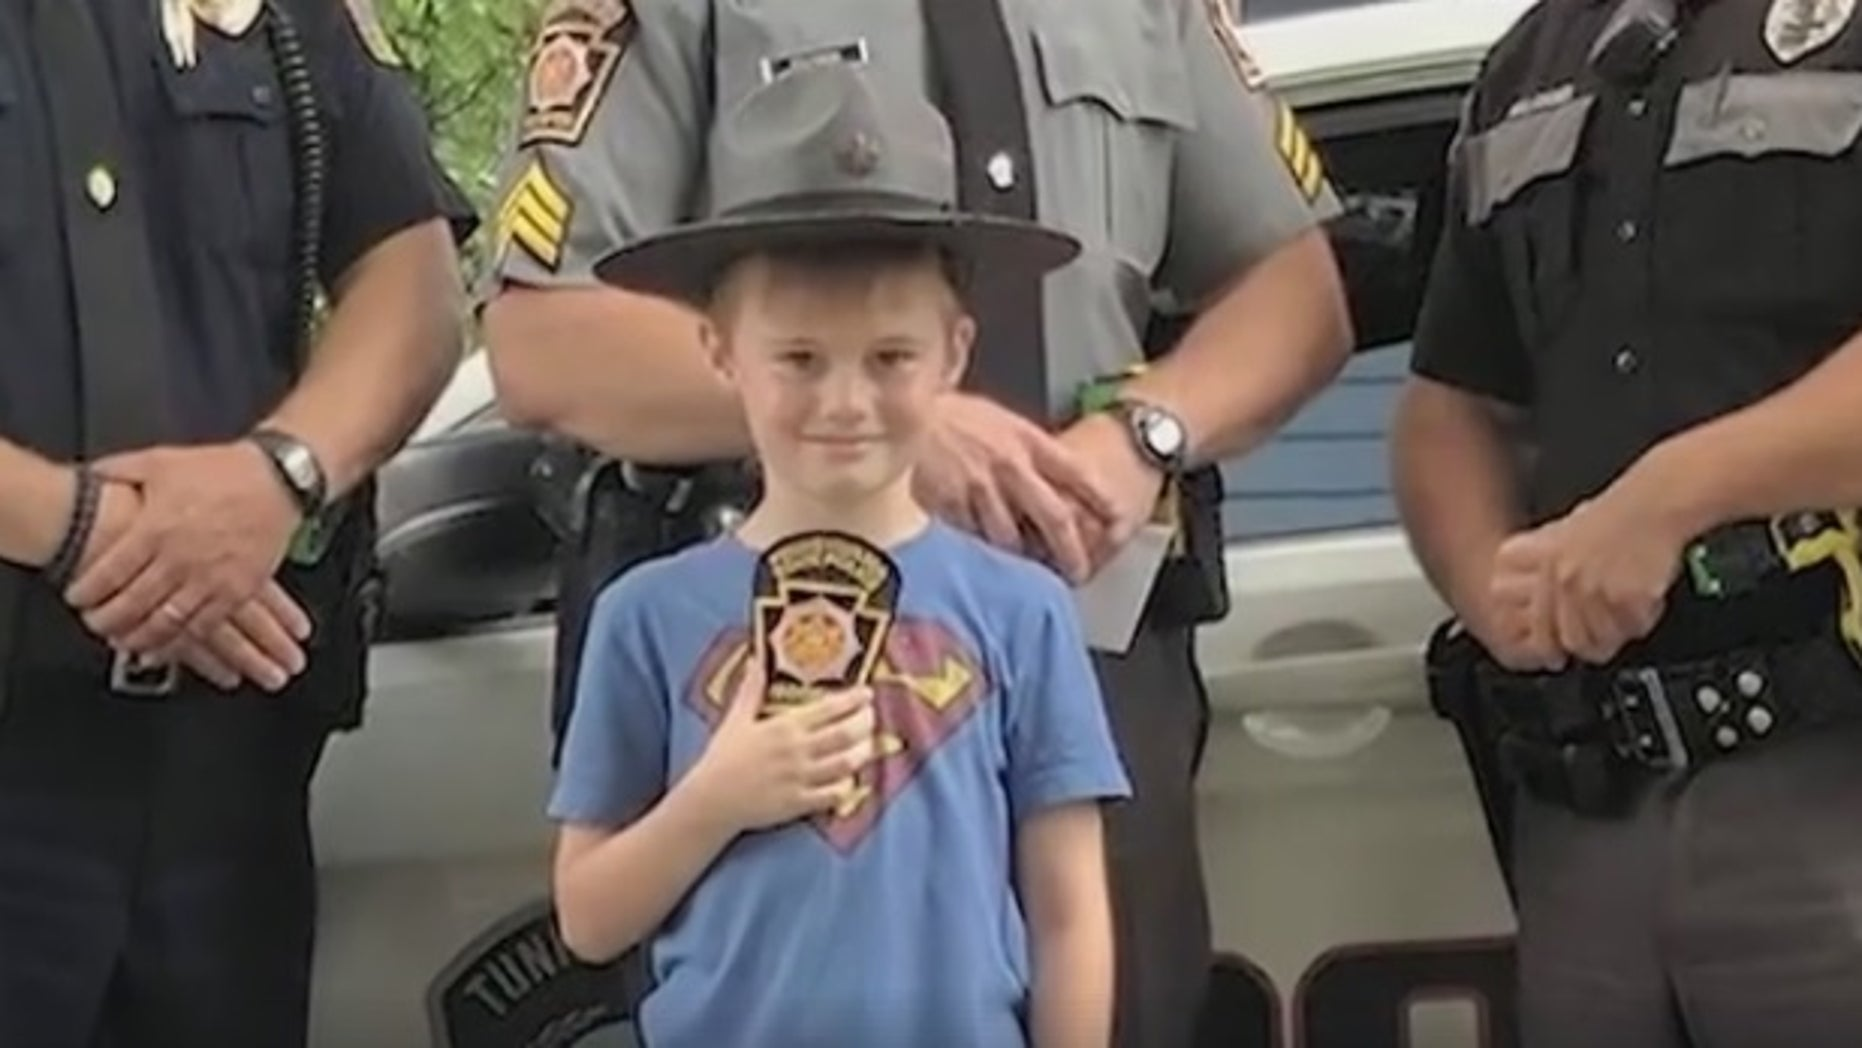 Owen with Pennsylvania State Police